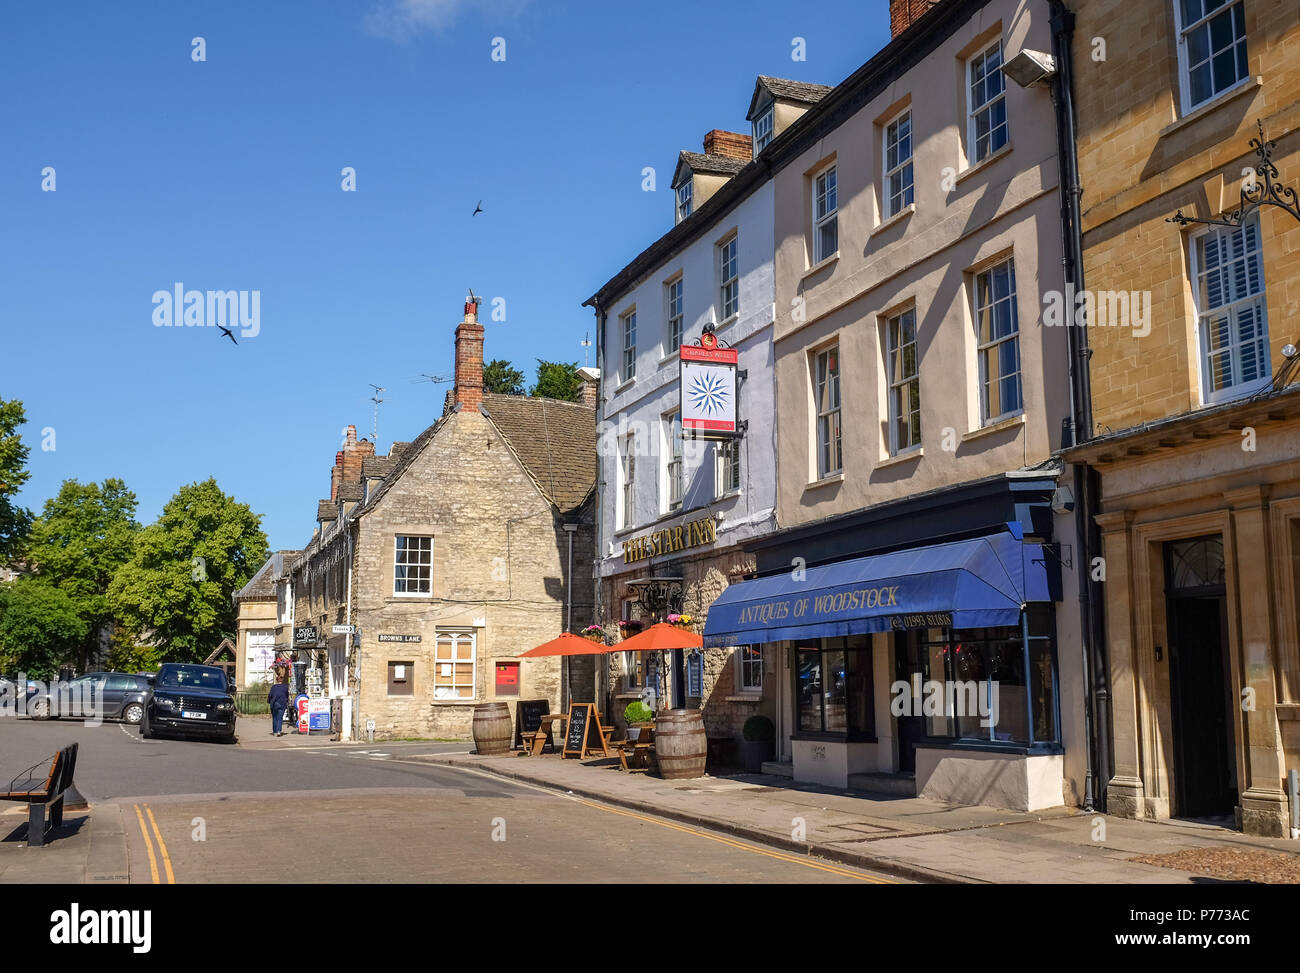 Star Inn pub in Quaint small Oxfordshire town of Woodstock . Woodstock is a historic town just to the north of Oxford. It grew up as a coach stop - Stock Image